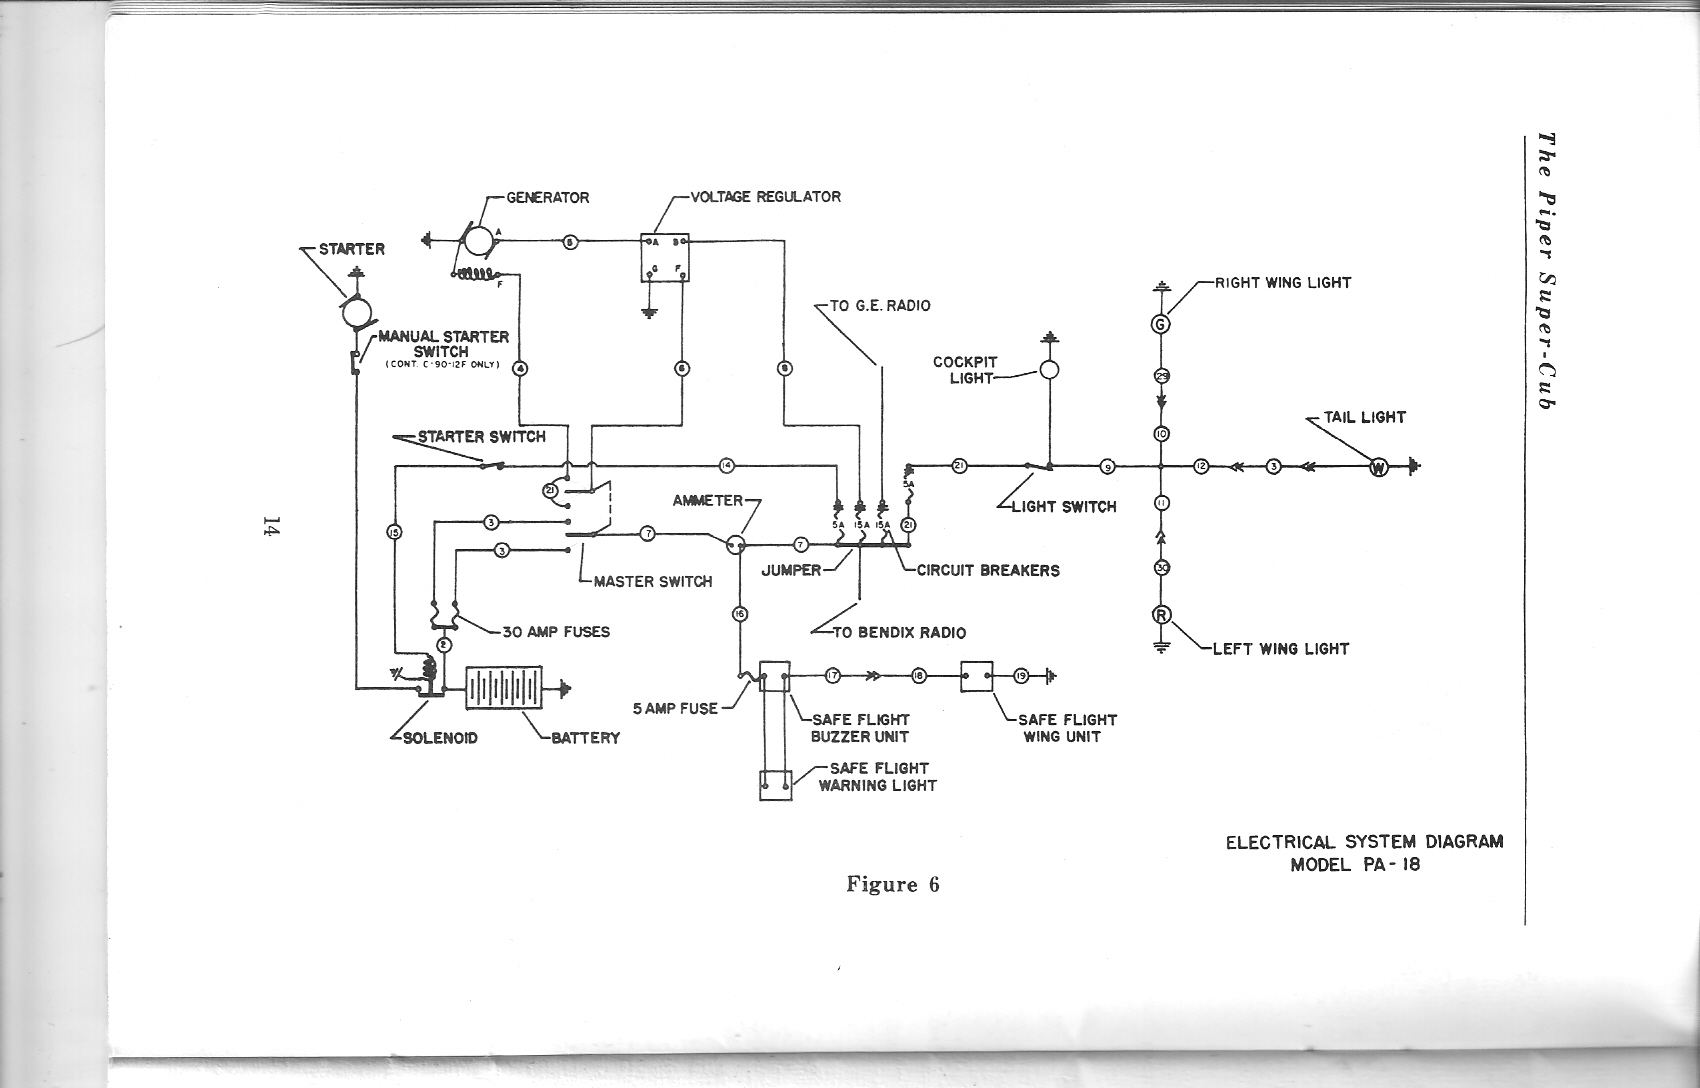 Cub Wiring Diagram | Wiring Liry on toyota maintenance schedule, toyota flasher relay, toyota ignition diagram, toyota wiring manual, toyota shop manual, toyota electrical diagrams, toyota cooling system diagram, toyota wiring harness, toyota ecu reset, toyota cylinder head, toyota wiring color codes, toyota 22re vacuum line diagram, toyota headlight wiring, toyota alternator wiring, toyota parts diagrams, toyota headlight adjustment, toyota diagrams online, toyota schematic diagrams, toyota shock absorber replacement, toyota truck diagrams,